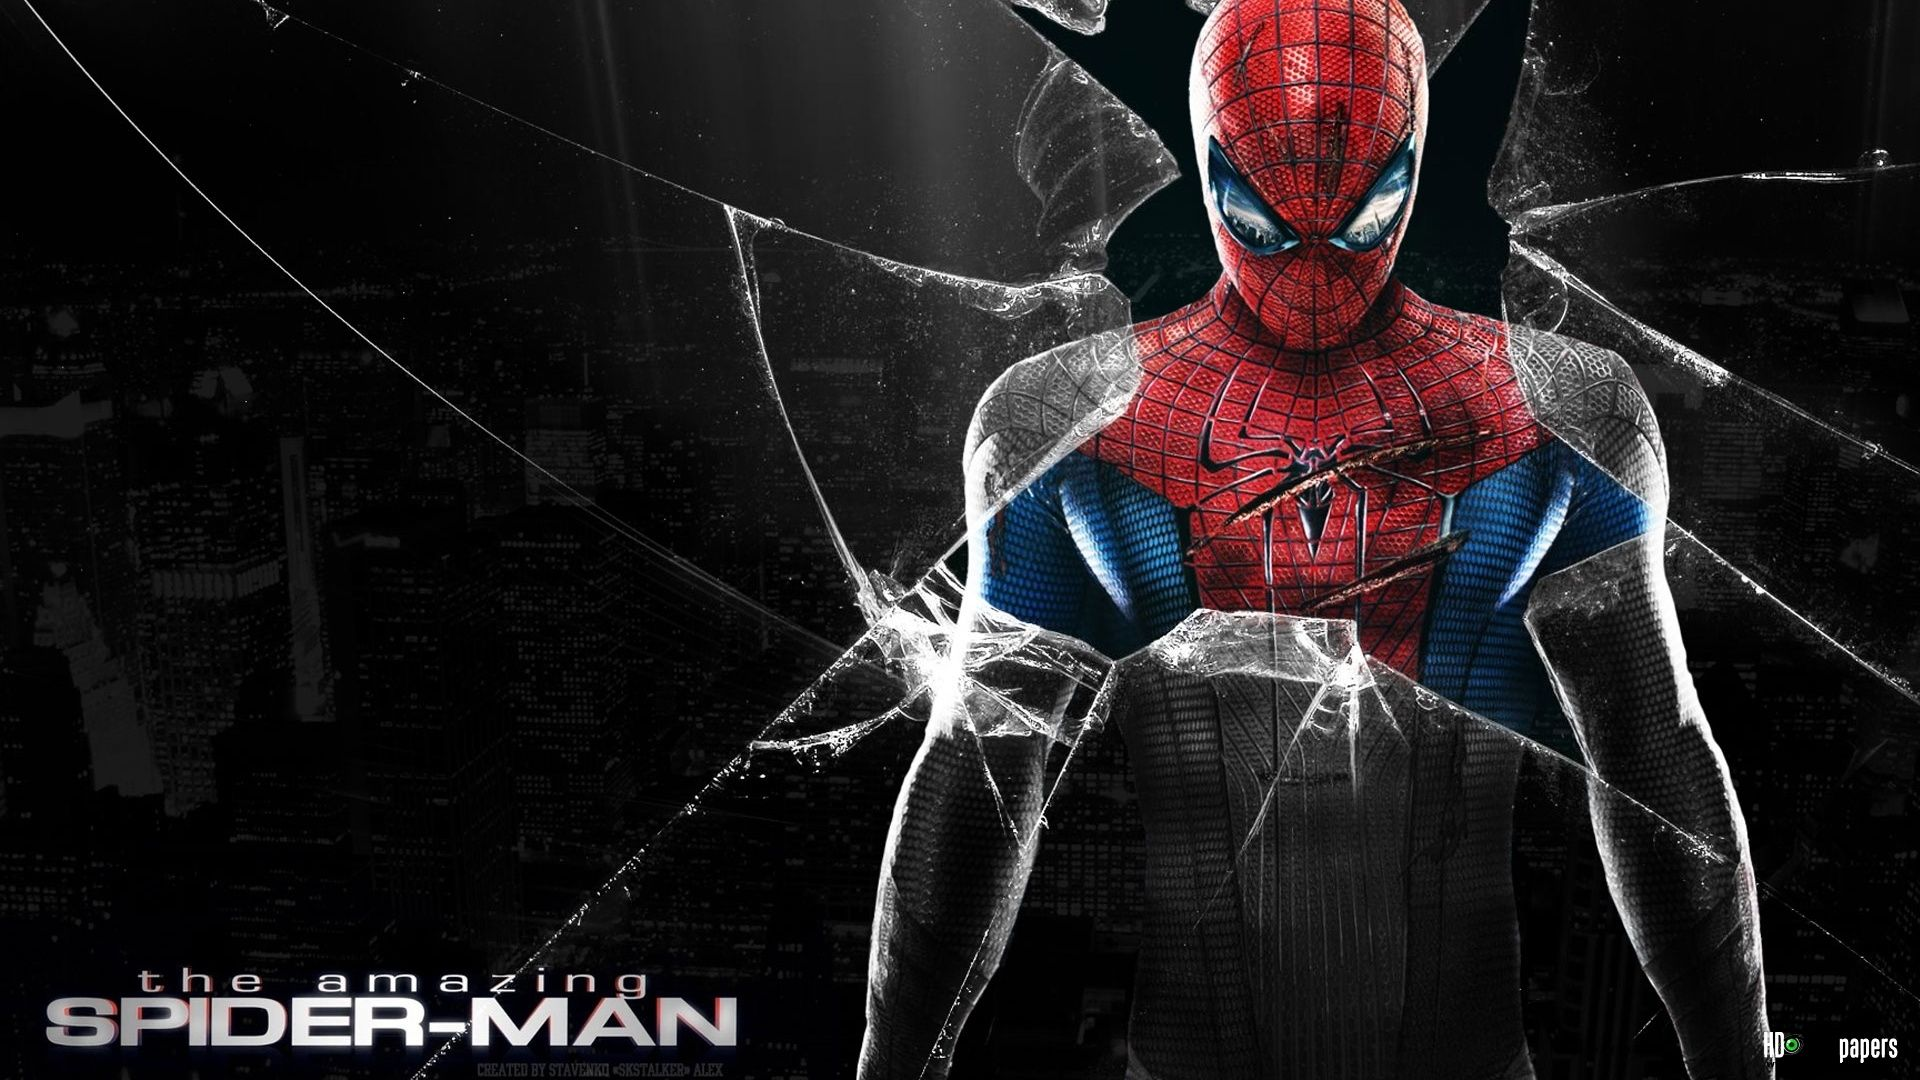 Spiderman Logo Wallpaper Hd 1080p 13 1920x1080